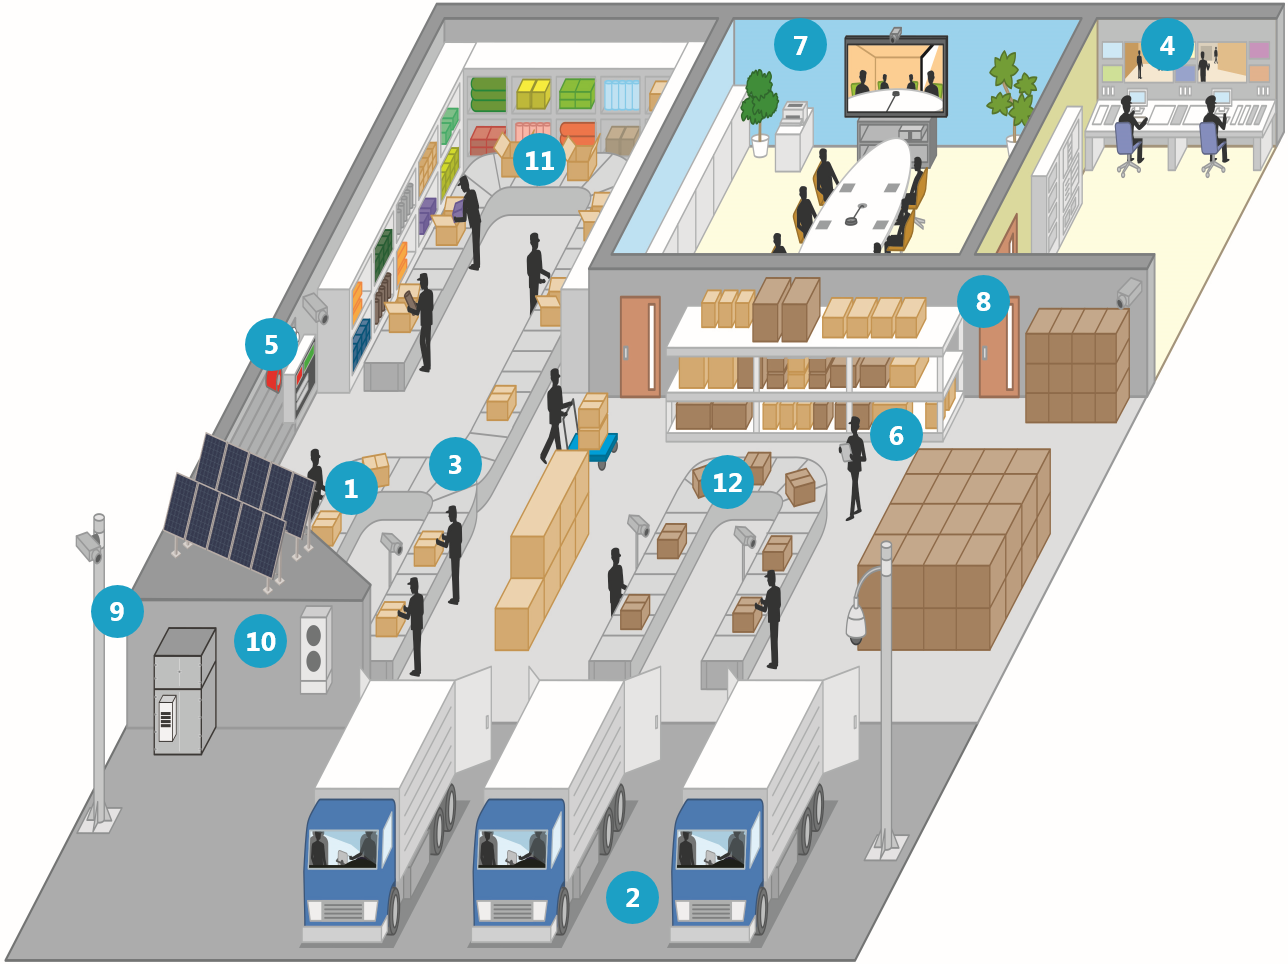 How do Panasonic solutions support the logistics sector?